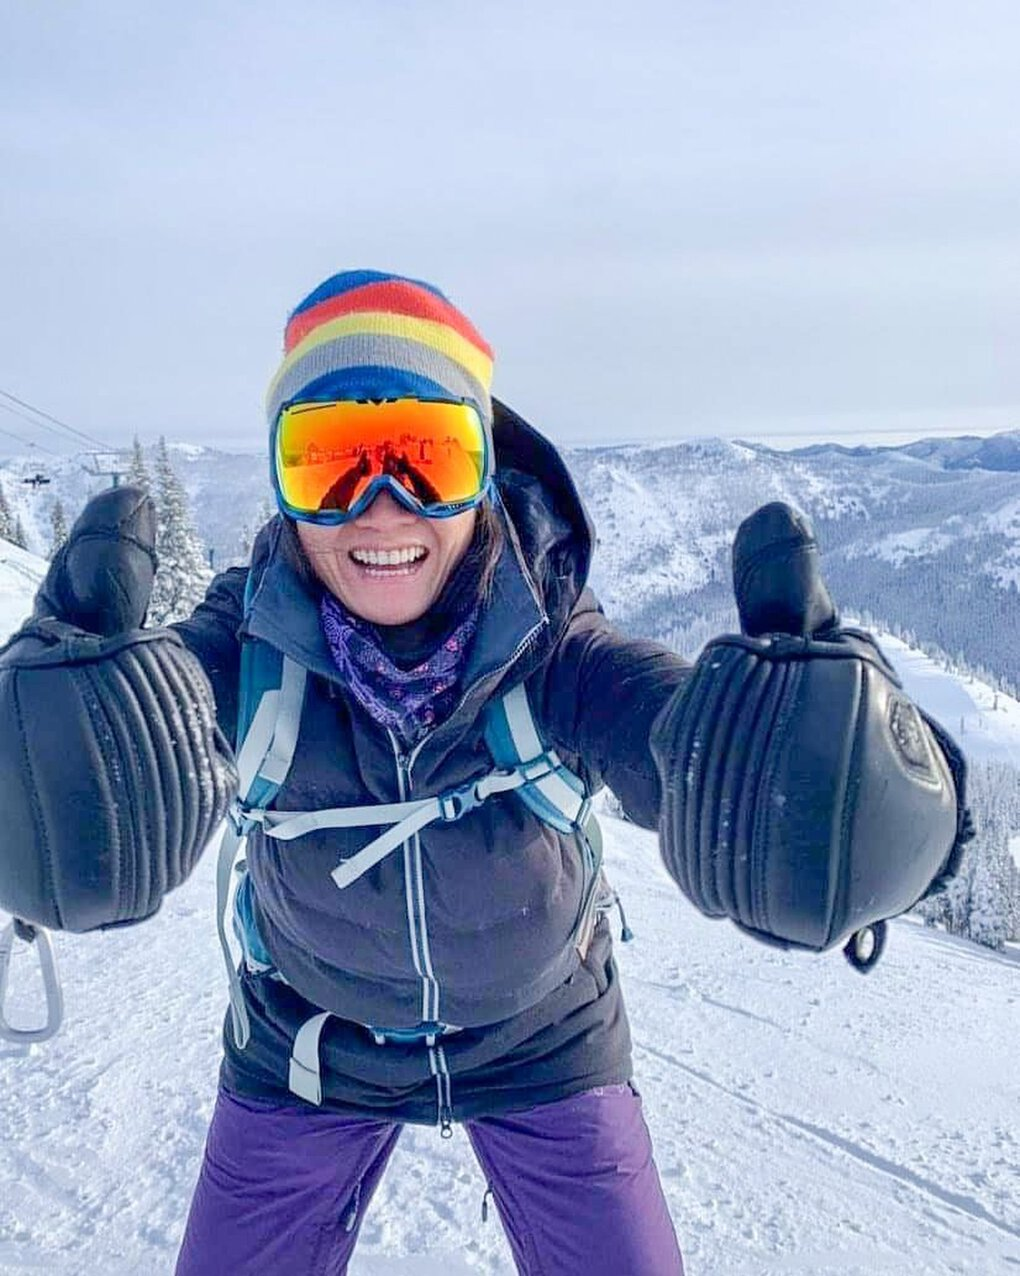 Candice Nuez of Federal Way gives Crystal Mountain kudos for its operational efficiency despite pandemic restrictions that made for a tricky 2020-21 ski season. (Courtesy of Candice Nuez)